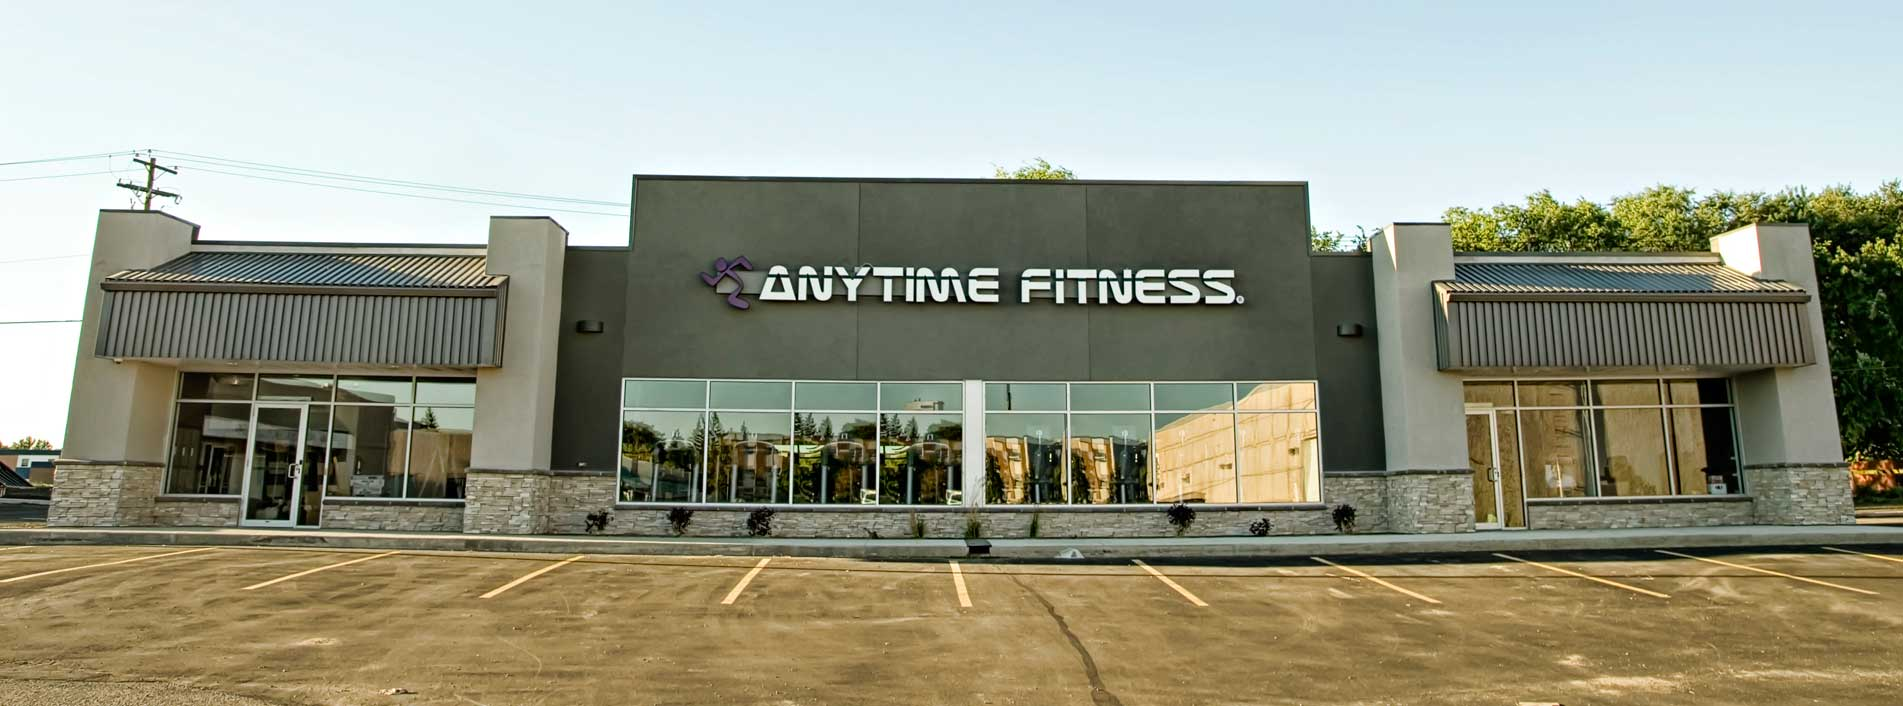 Anytime Fitness, Brandon, VBJ Developments